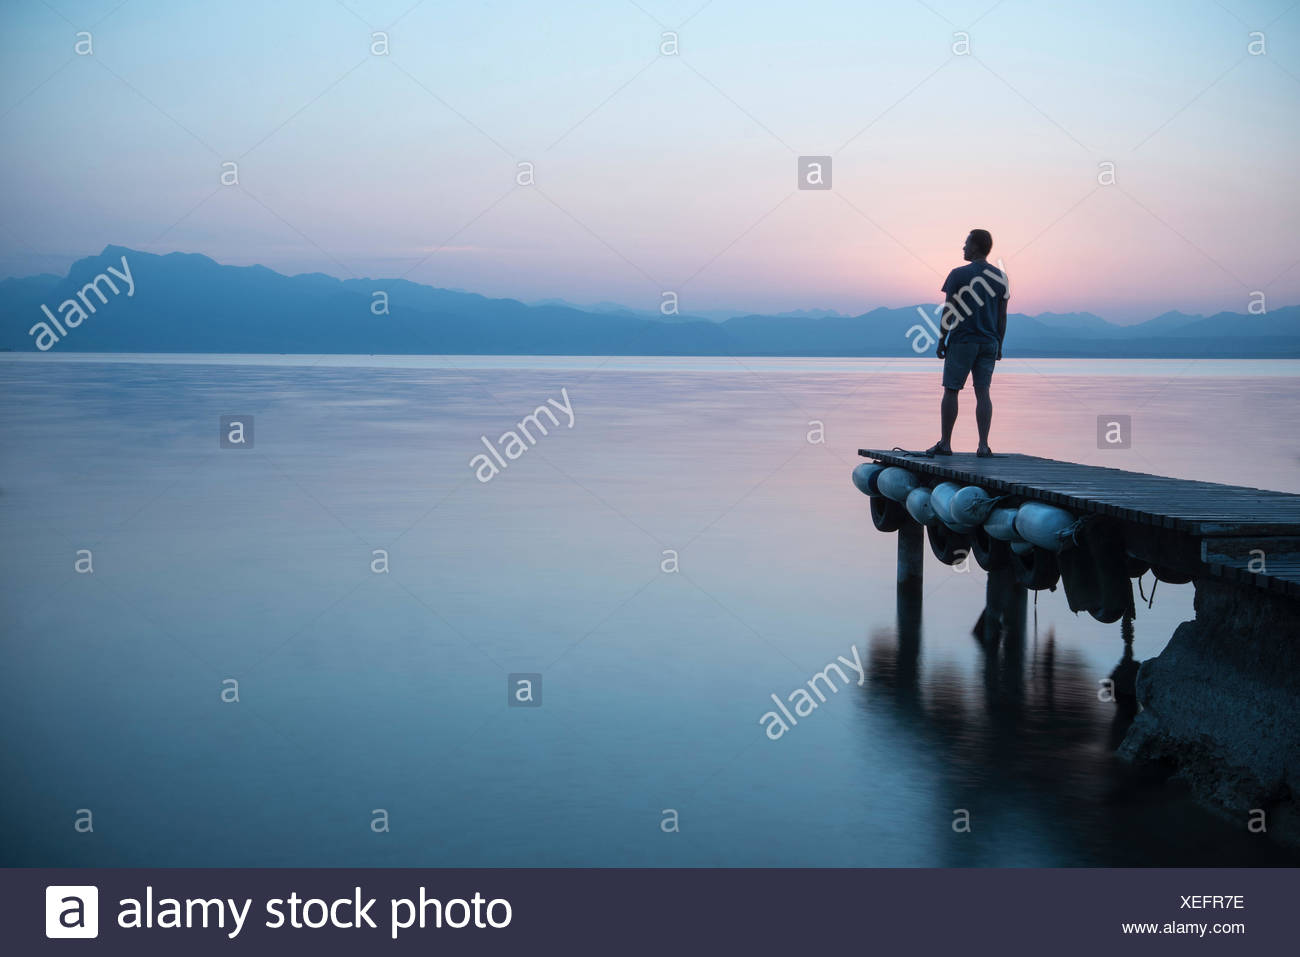 Man standing at a jetty and looking at the lake - Stock Image